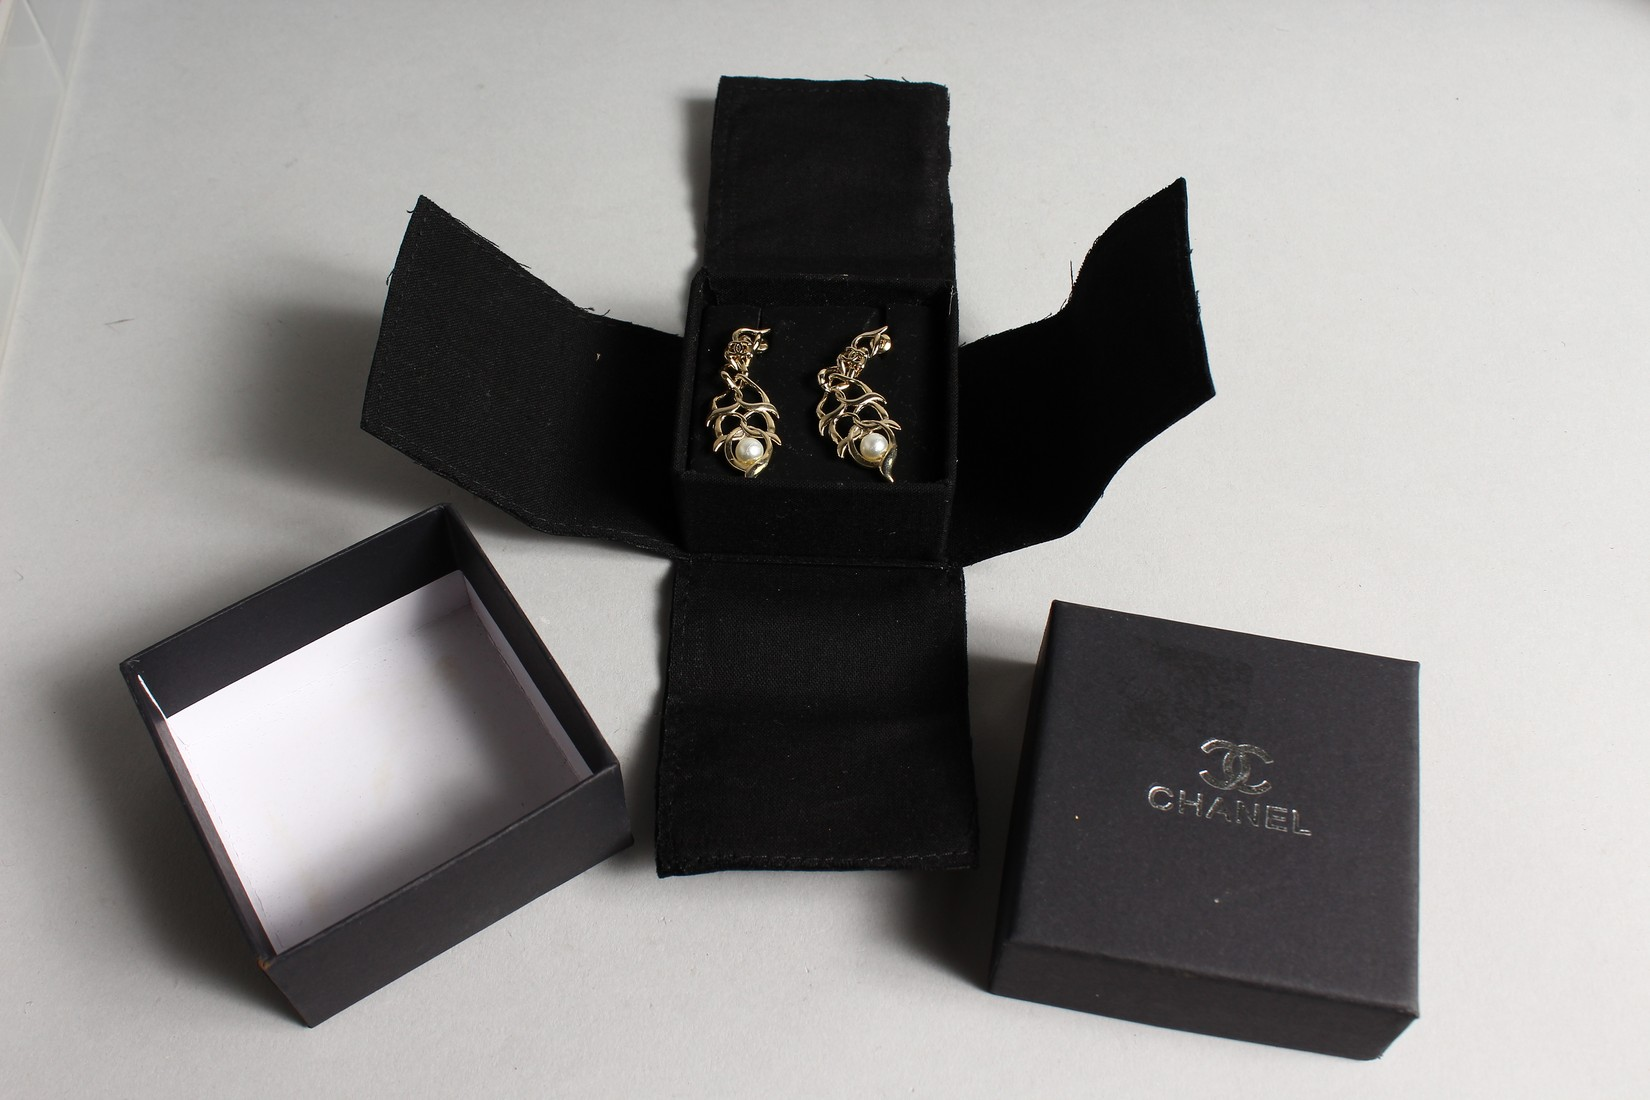 A PAIR OF CHANEL REPLICA EARRINGS in a box - Image 2 of 2